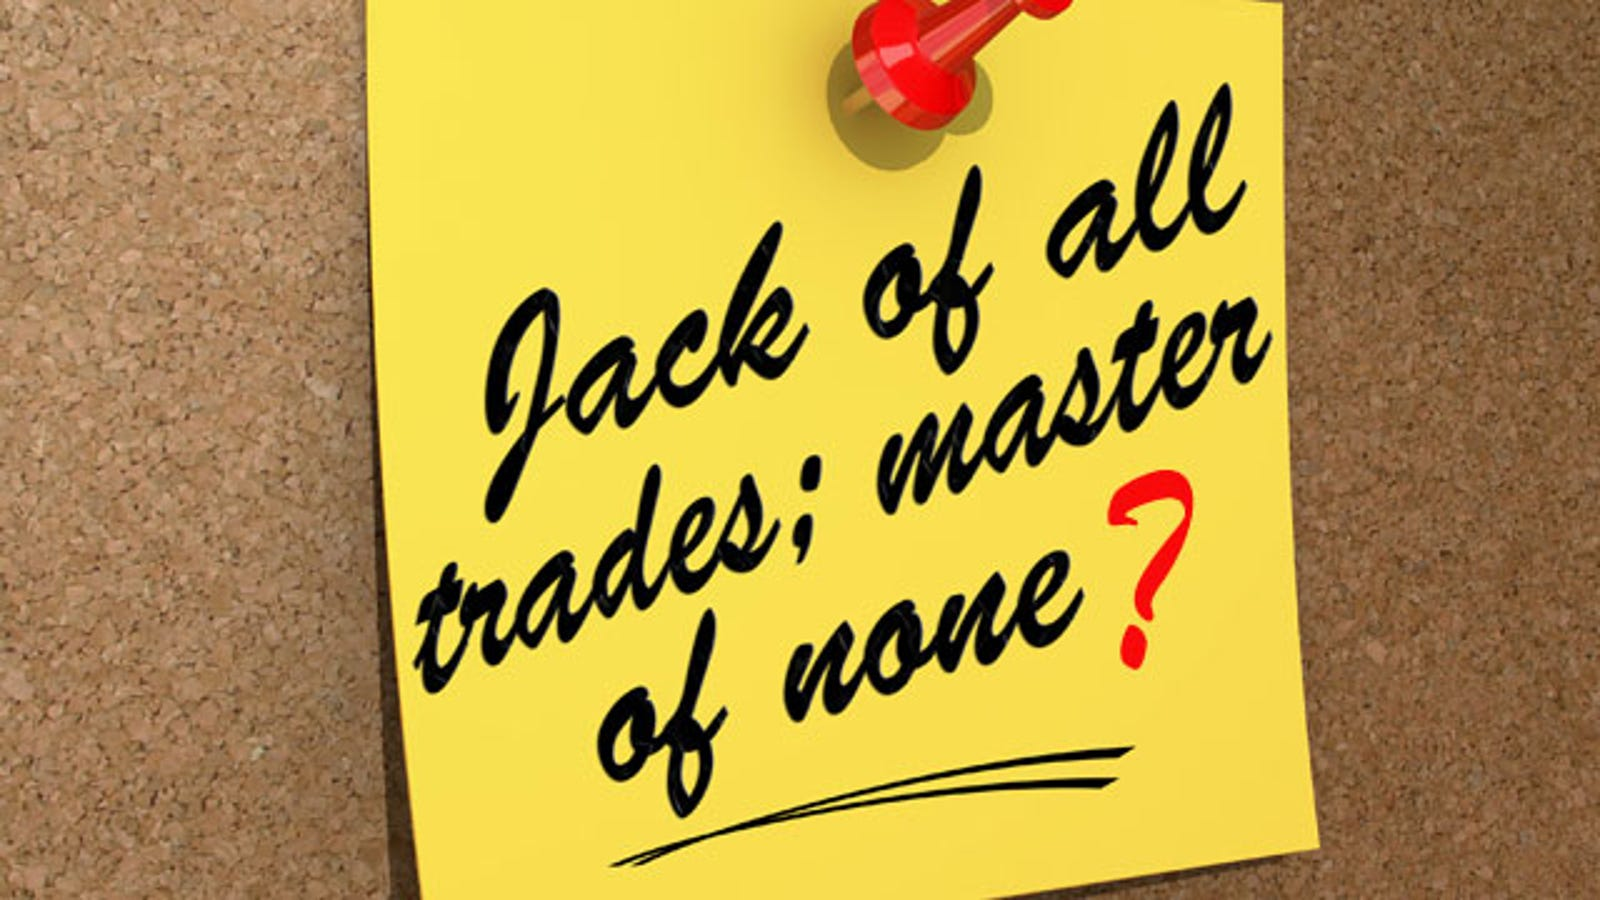 Jack of all trades master of none good or bad